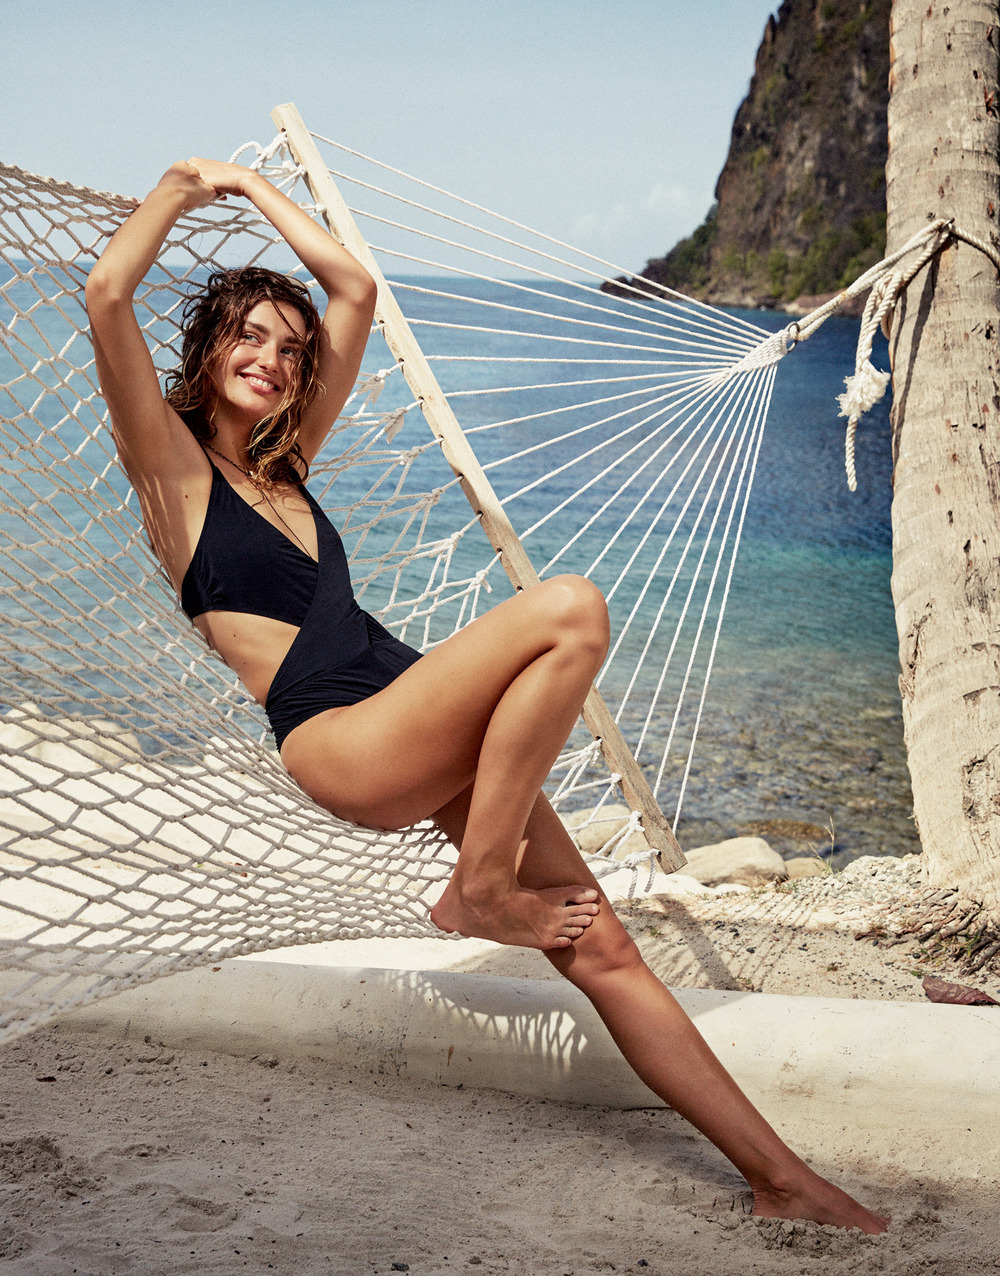 6abca-andreea-diaconu-by-cass-bird-for-porter-magazine-summer-escape-2015-4.jpg